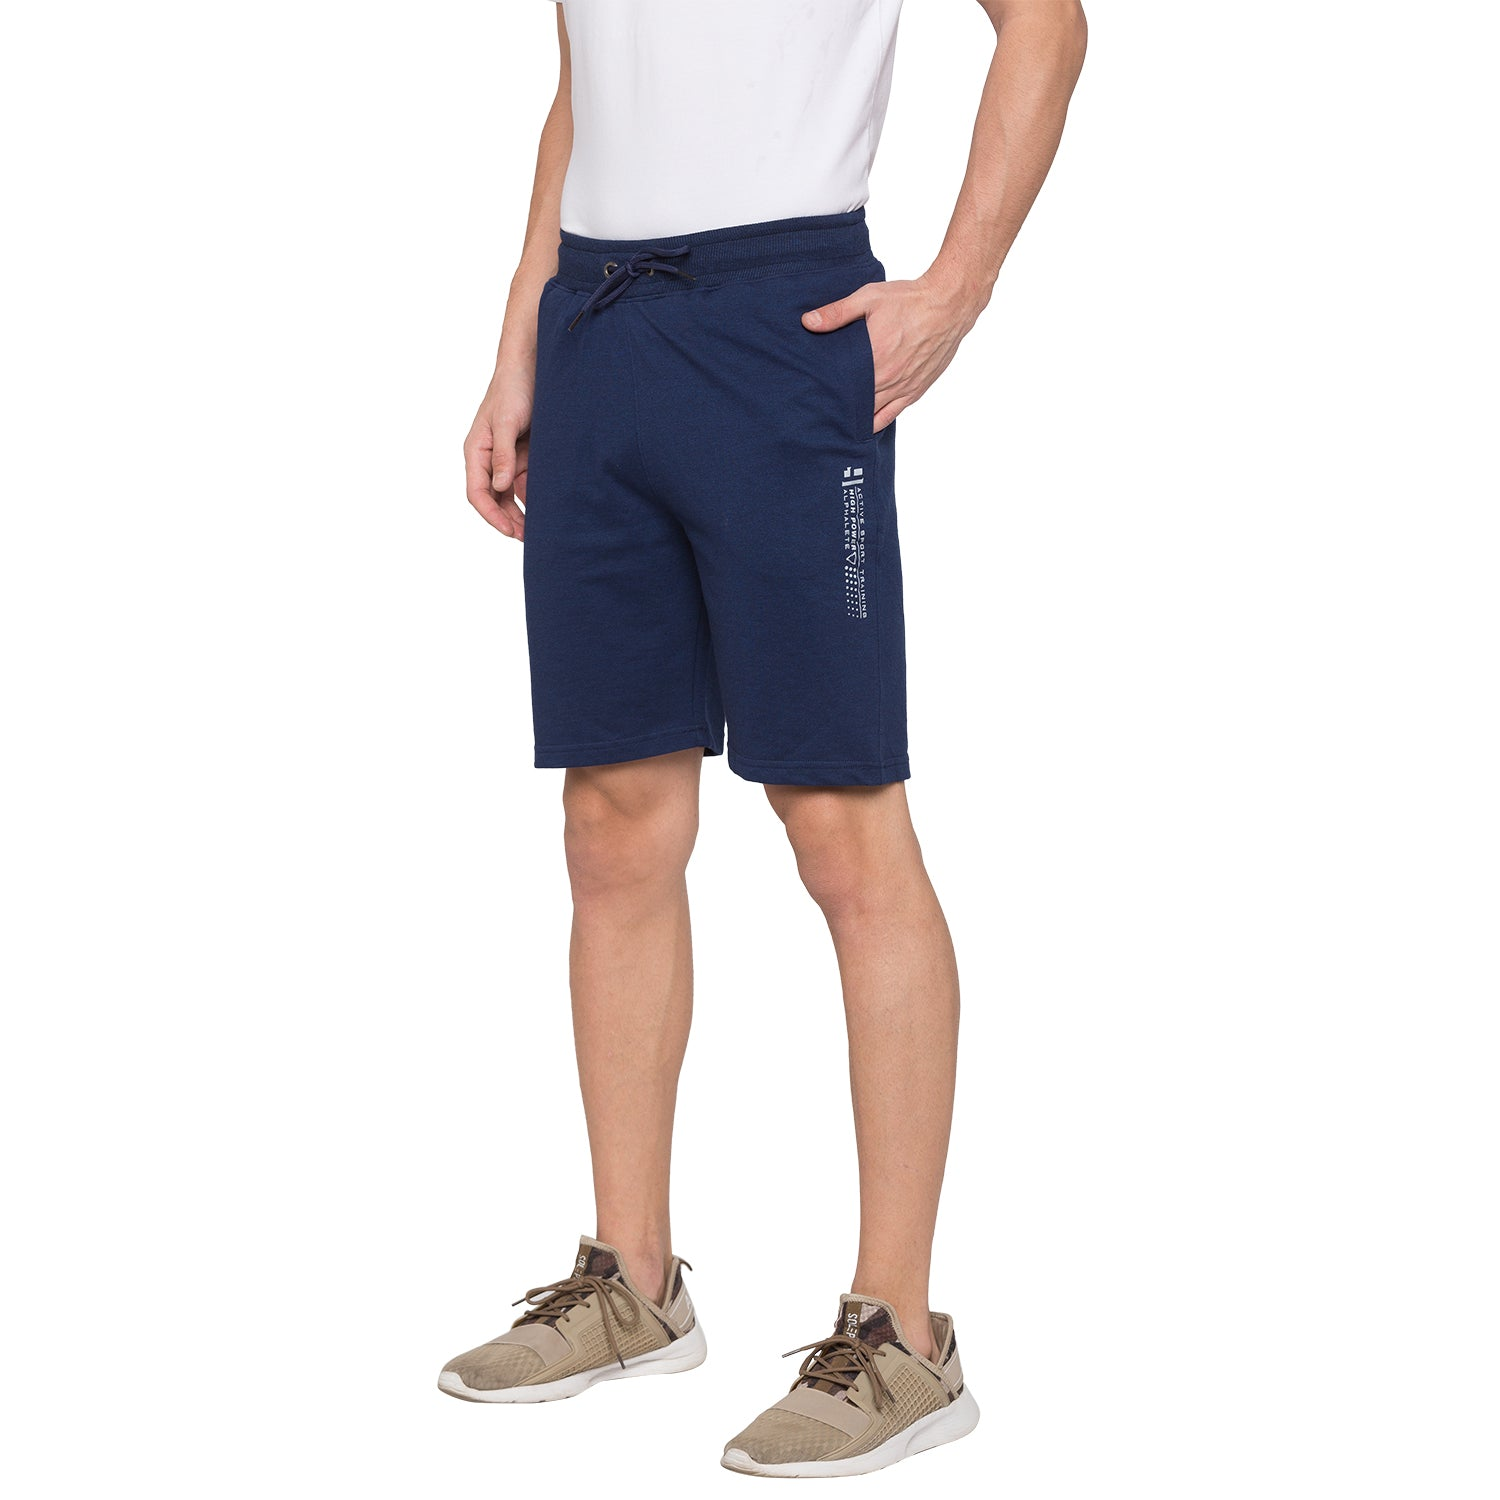 Globus Navy Blue Solid Shorts2